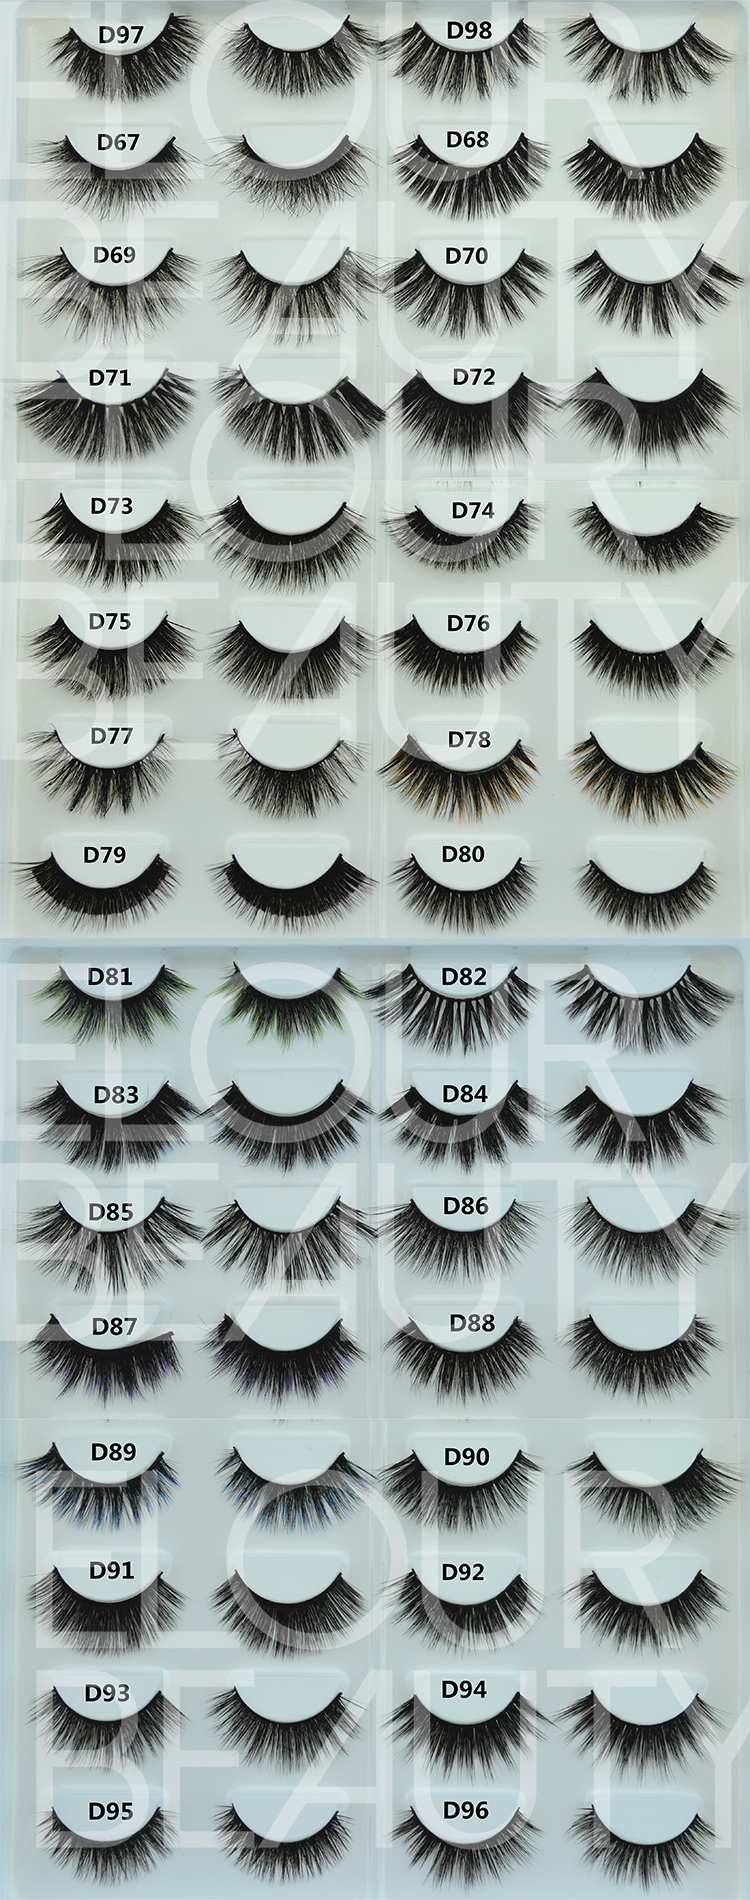 hundreds styles of 3d silk lashes wholesale.jpg